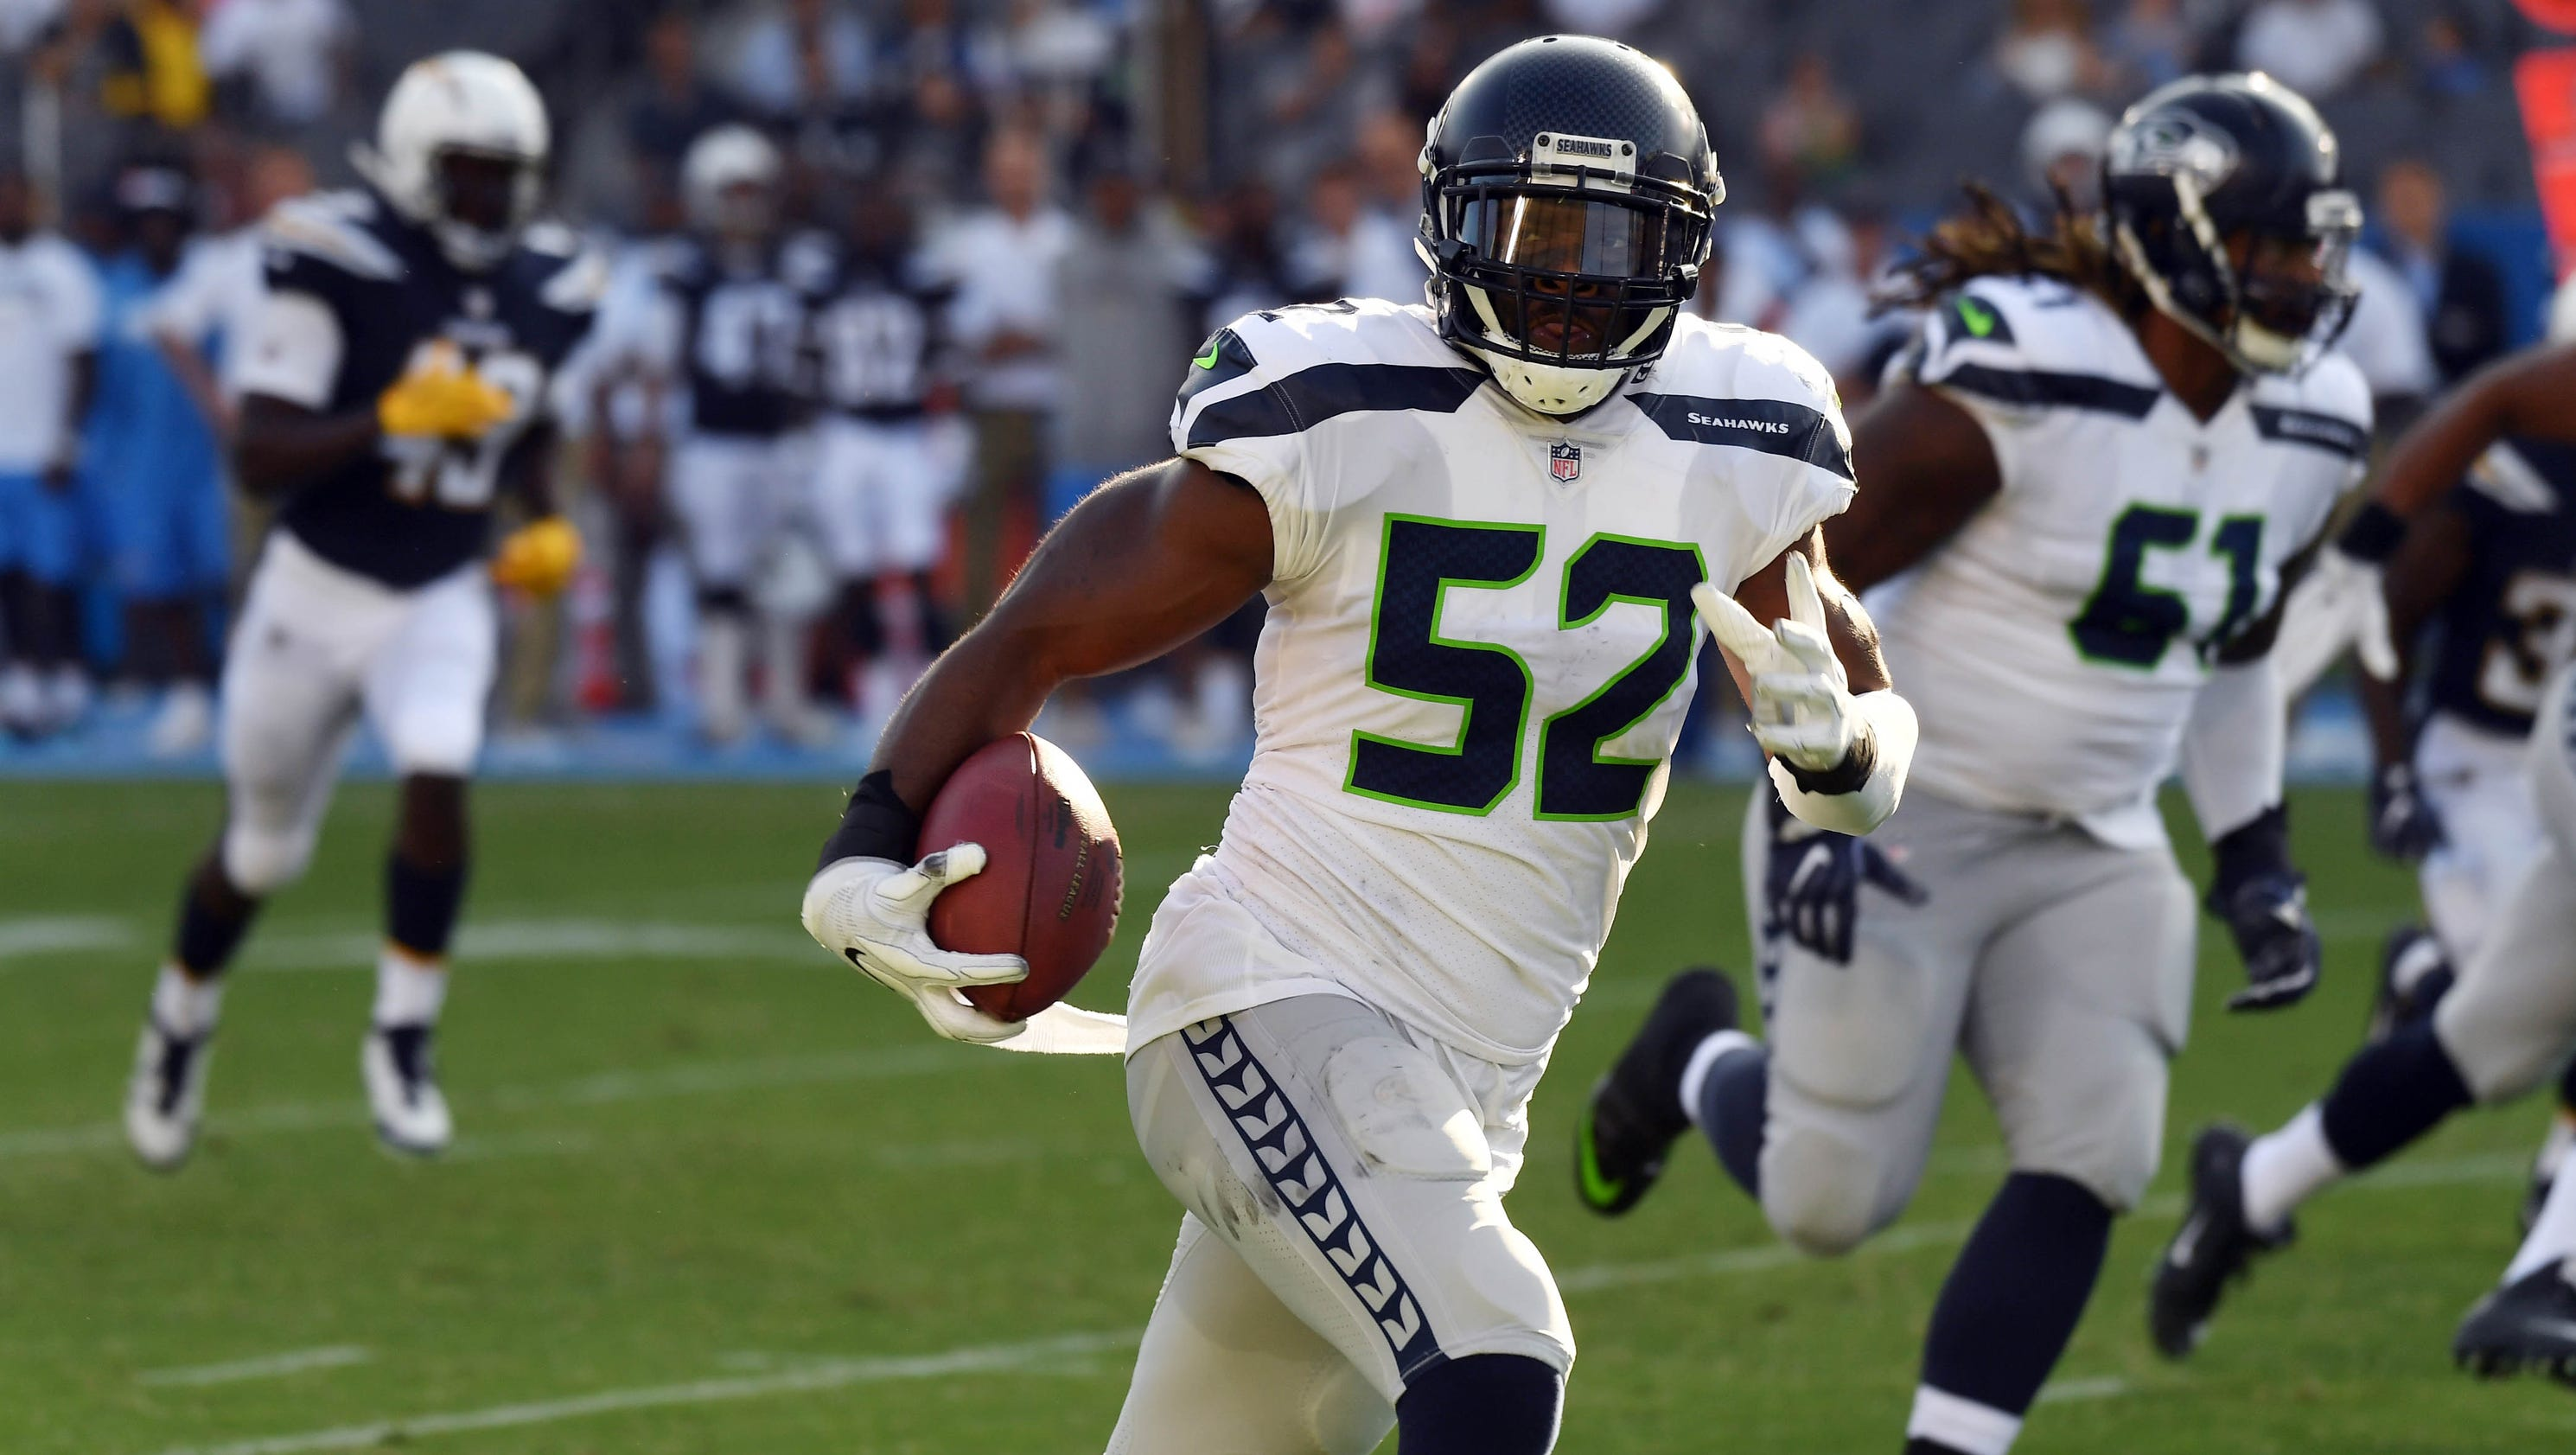 Seahawks win 48-17 in Chargers' Los Angeles debut